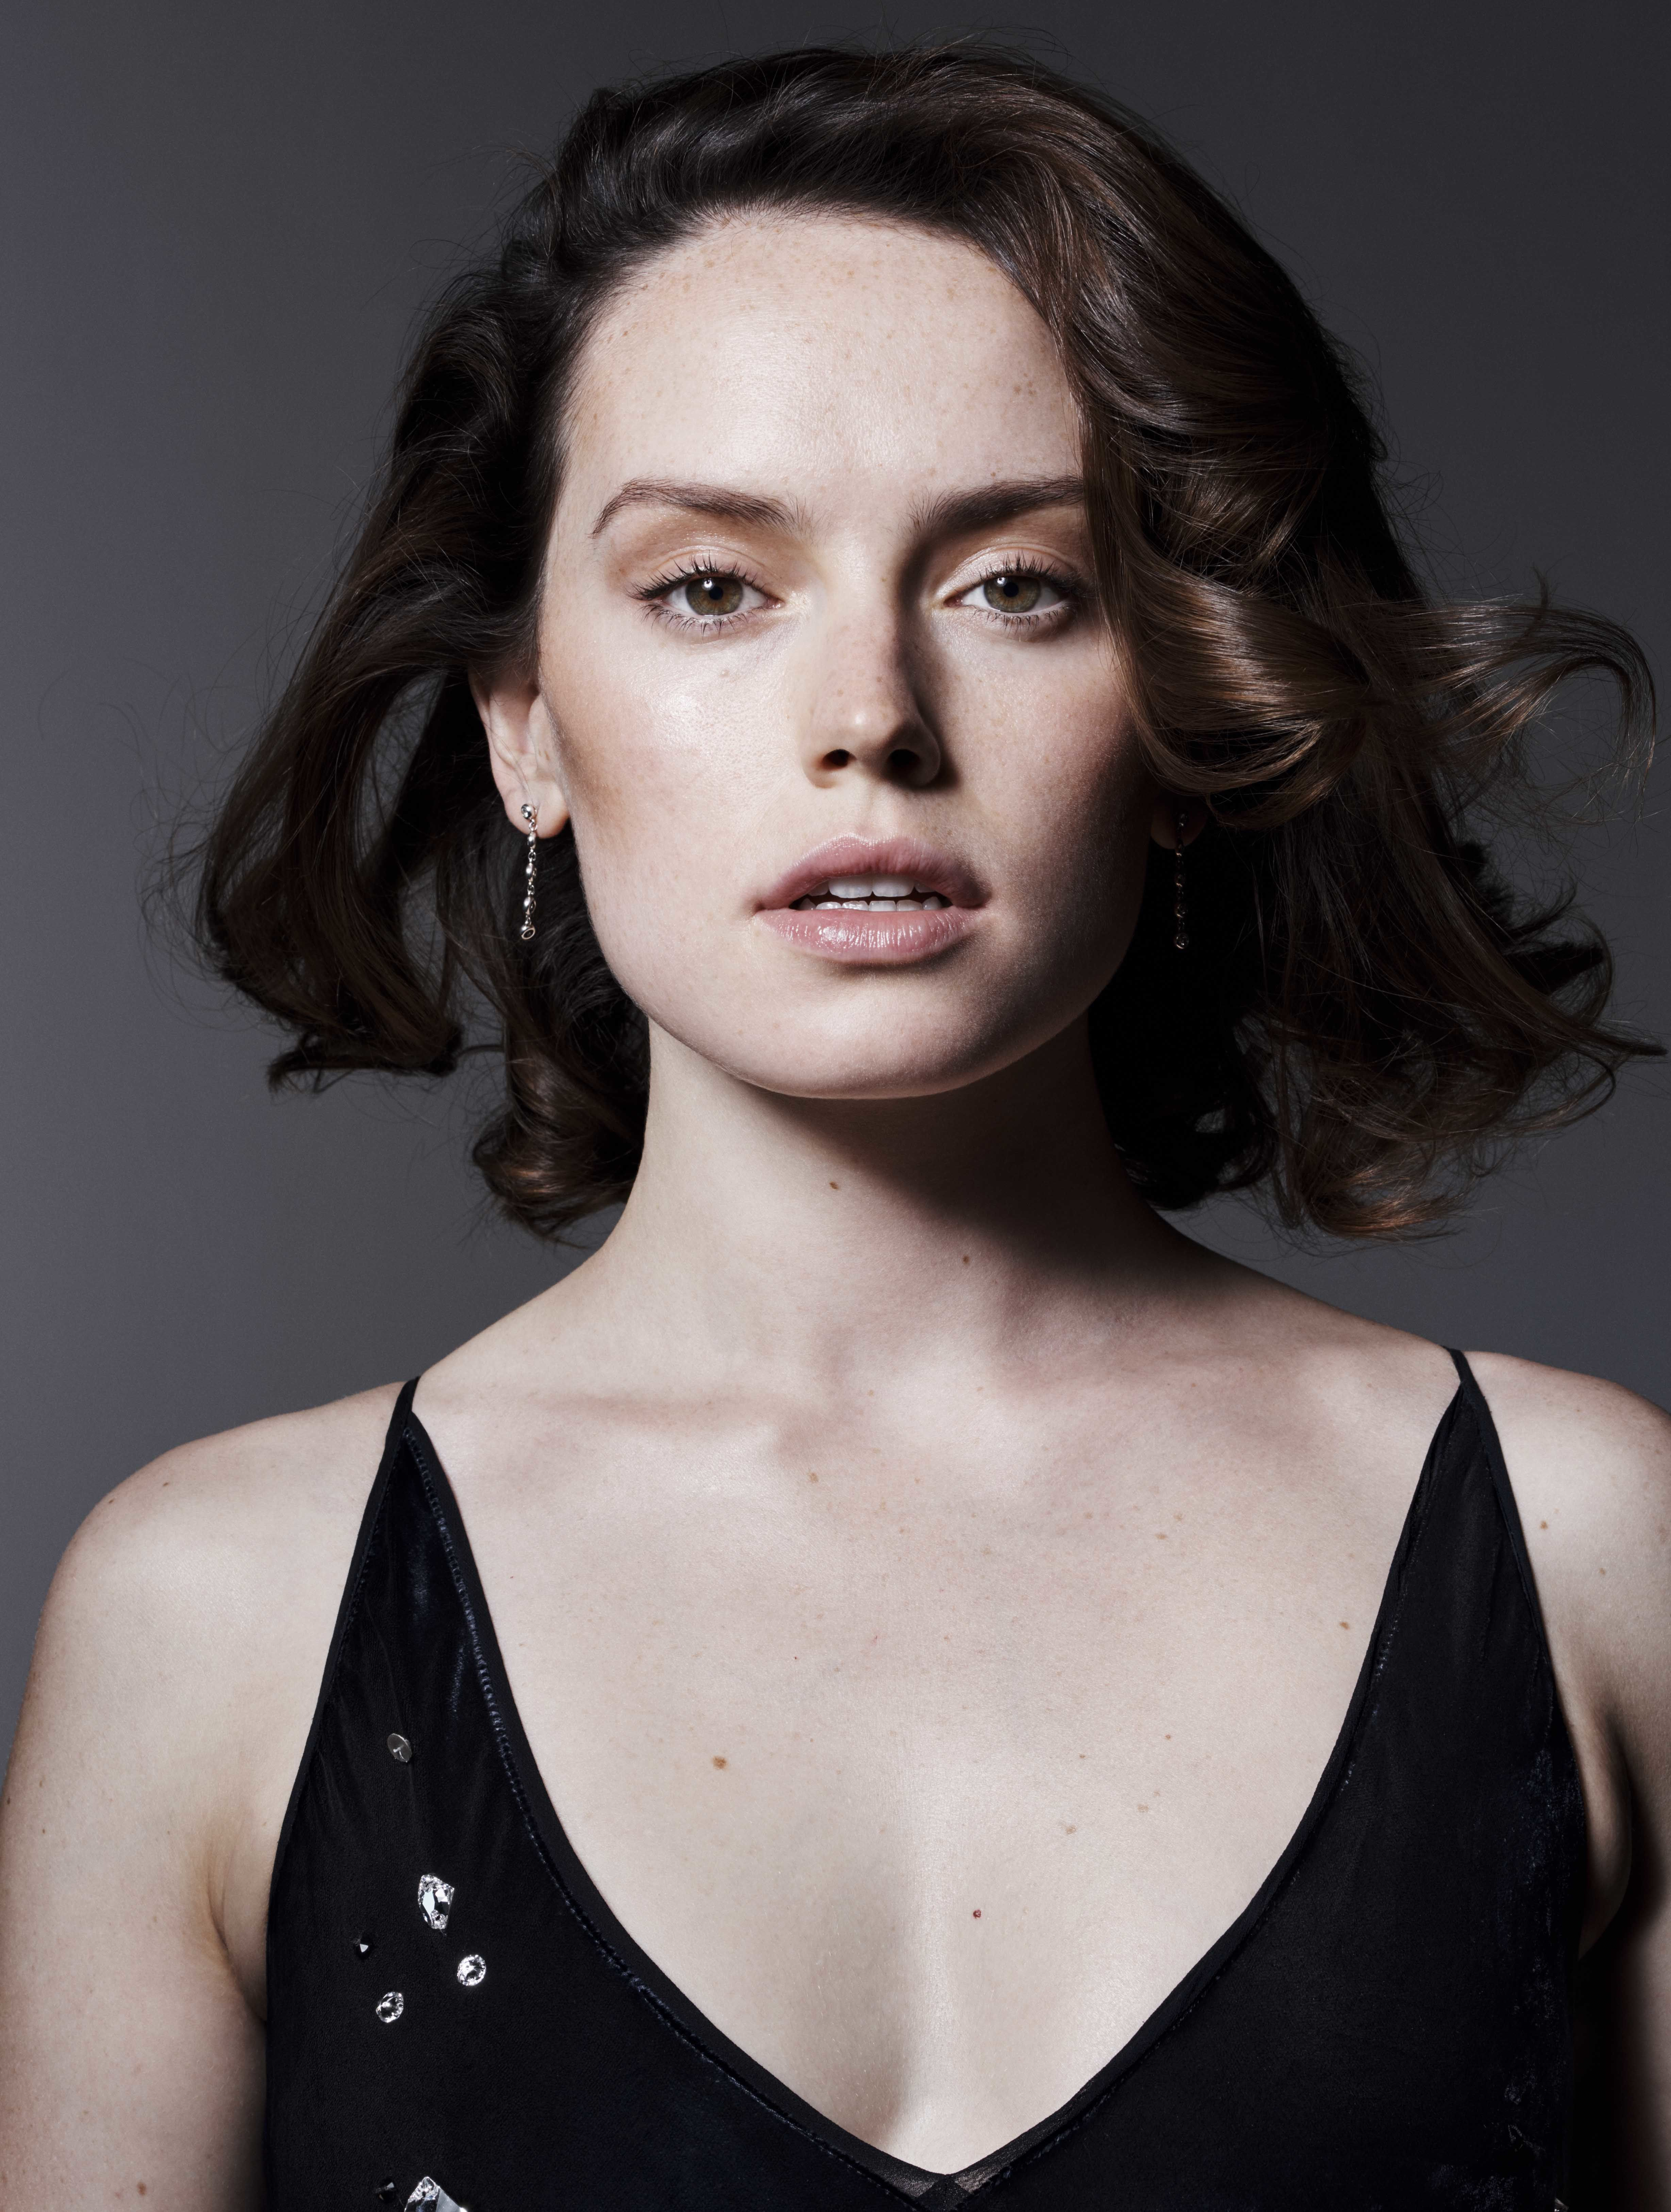 2019 Daisy Ridley naked (52 foto and video), Tits, Sideboobs, Boobs, cameltoe 2006